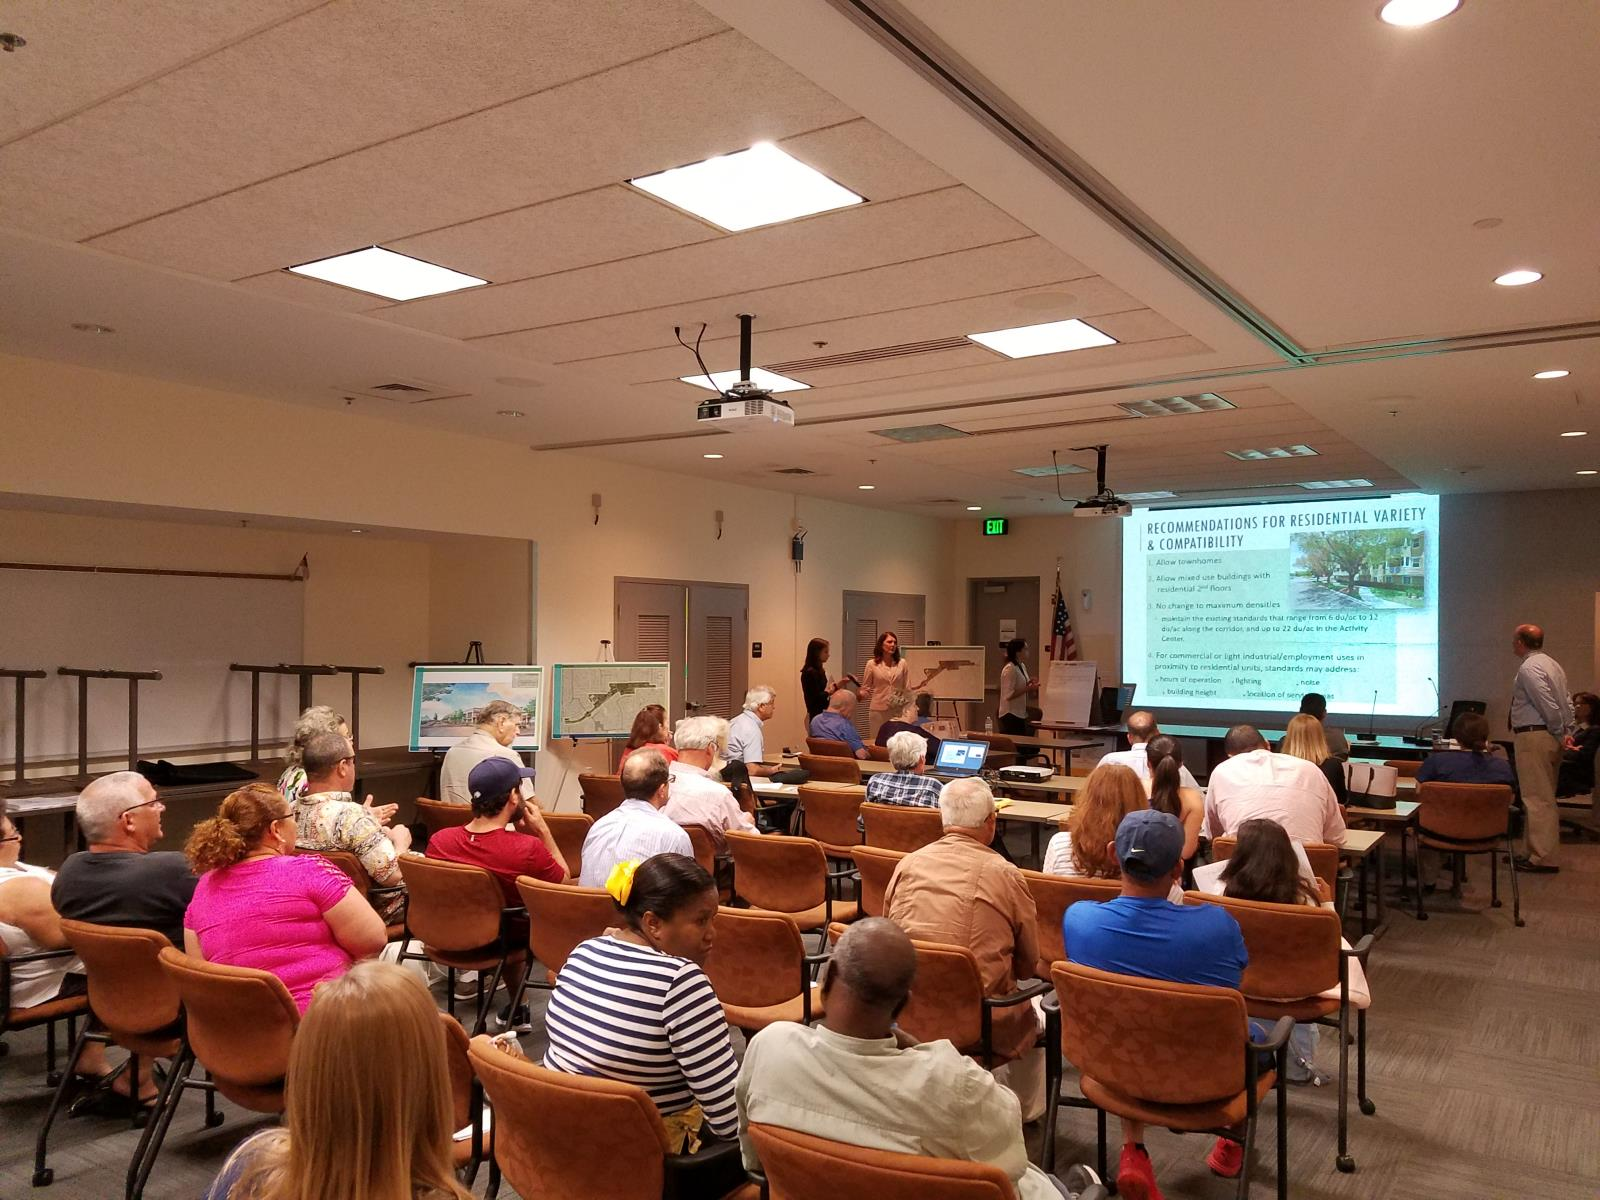 Photo from 11-08-18 Public Meeting